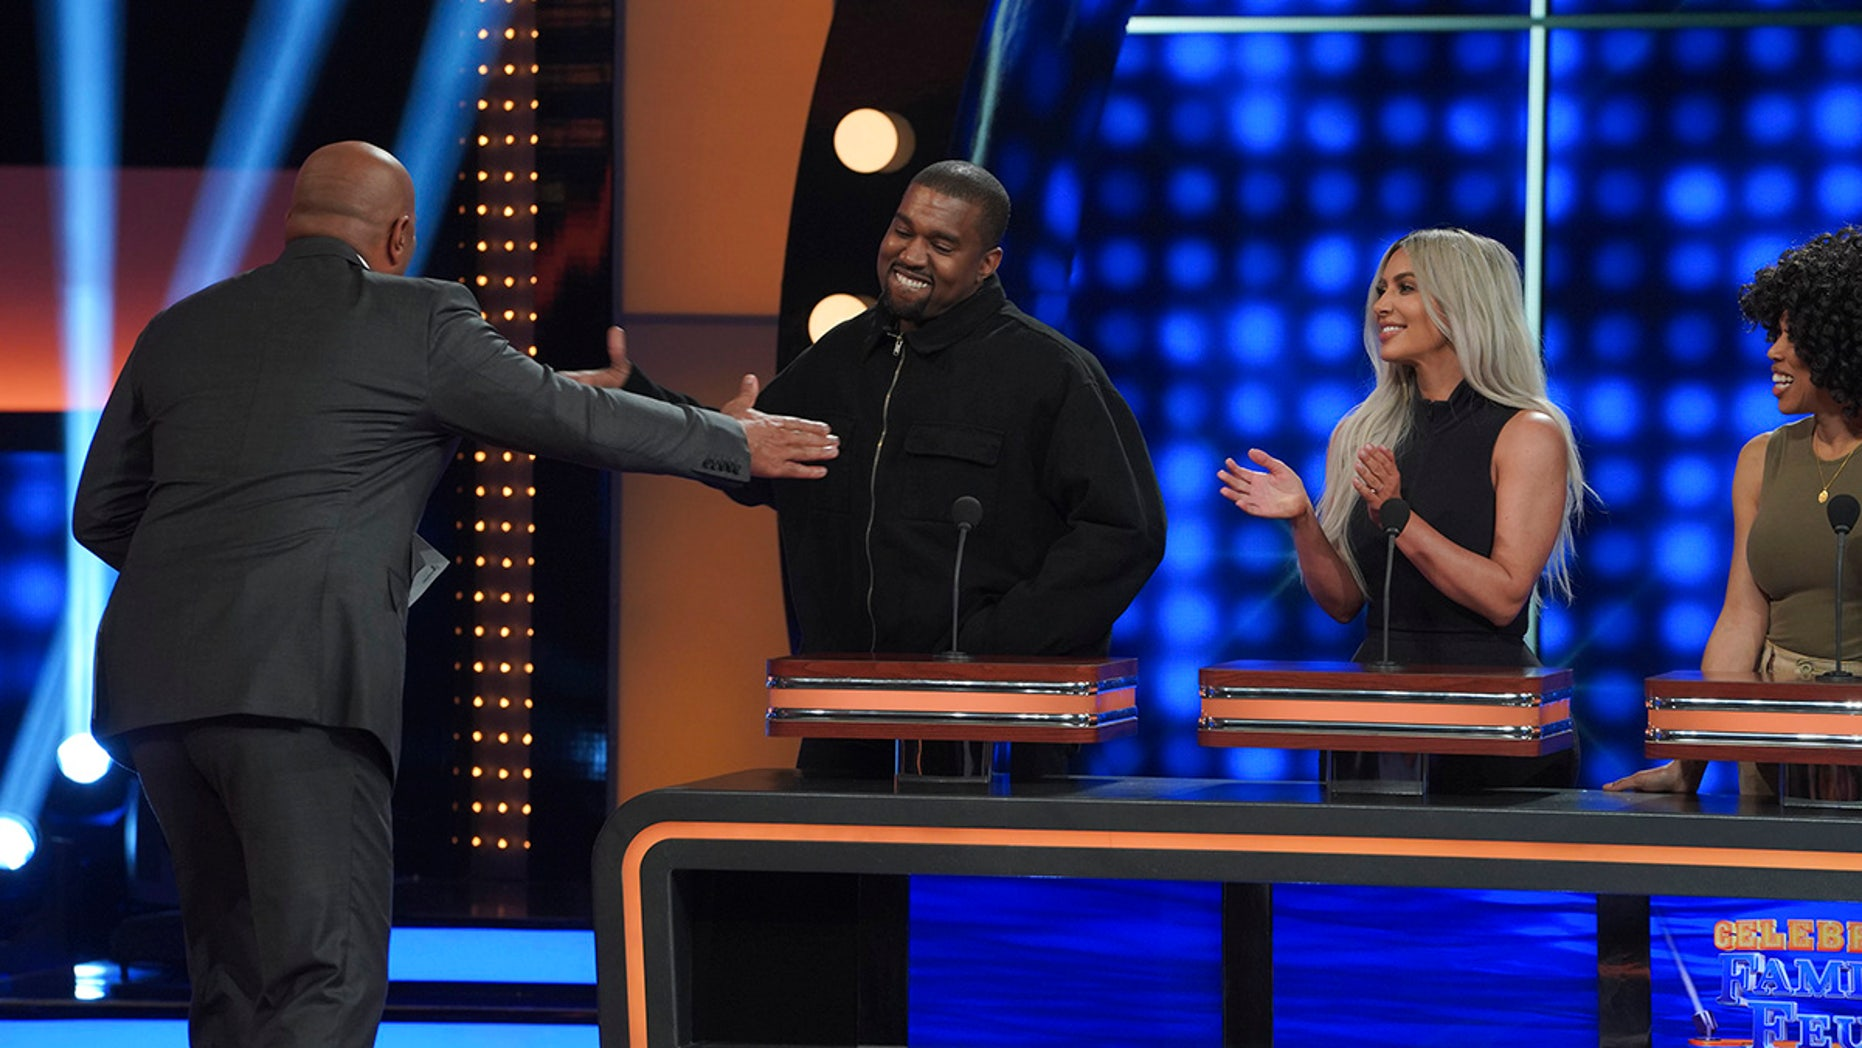 Celebrity Family Feud (TV Series 2008– ) - Celebrity ...